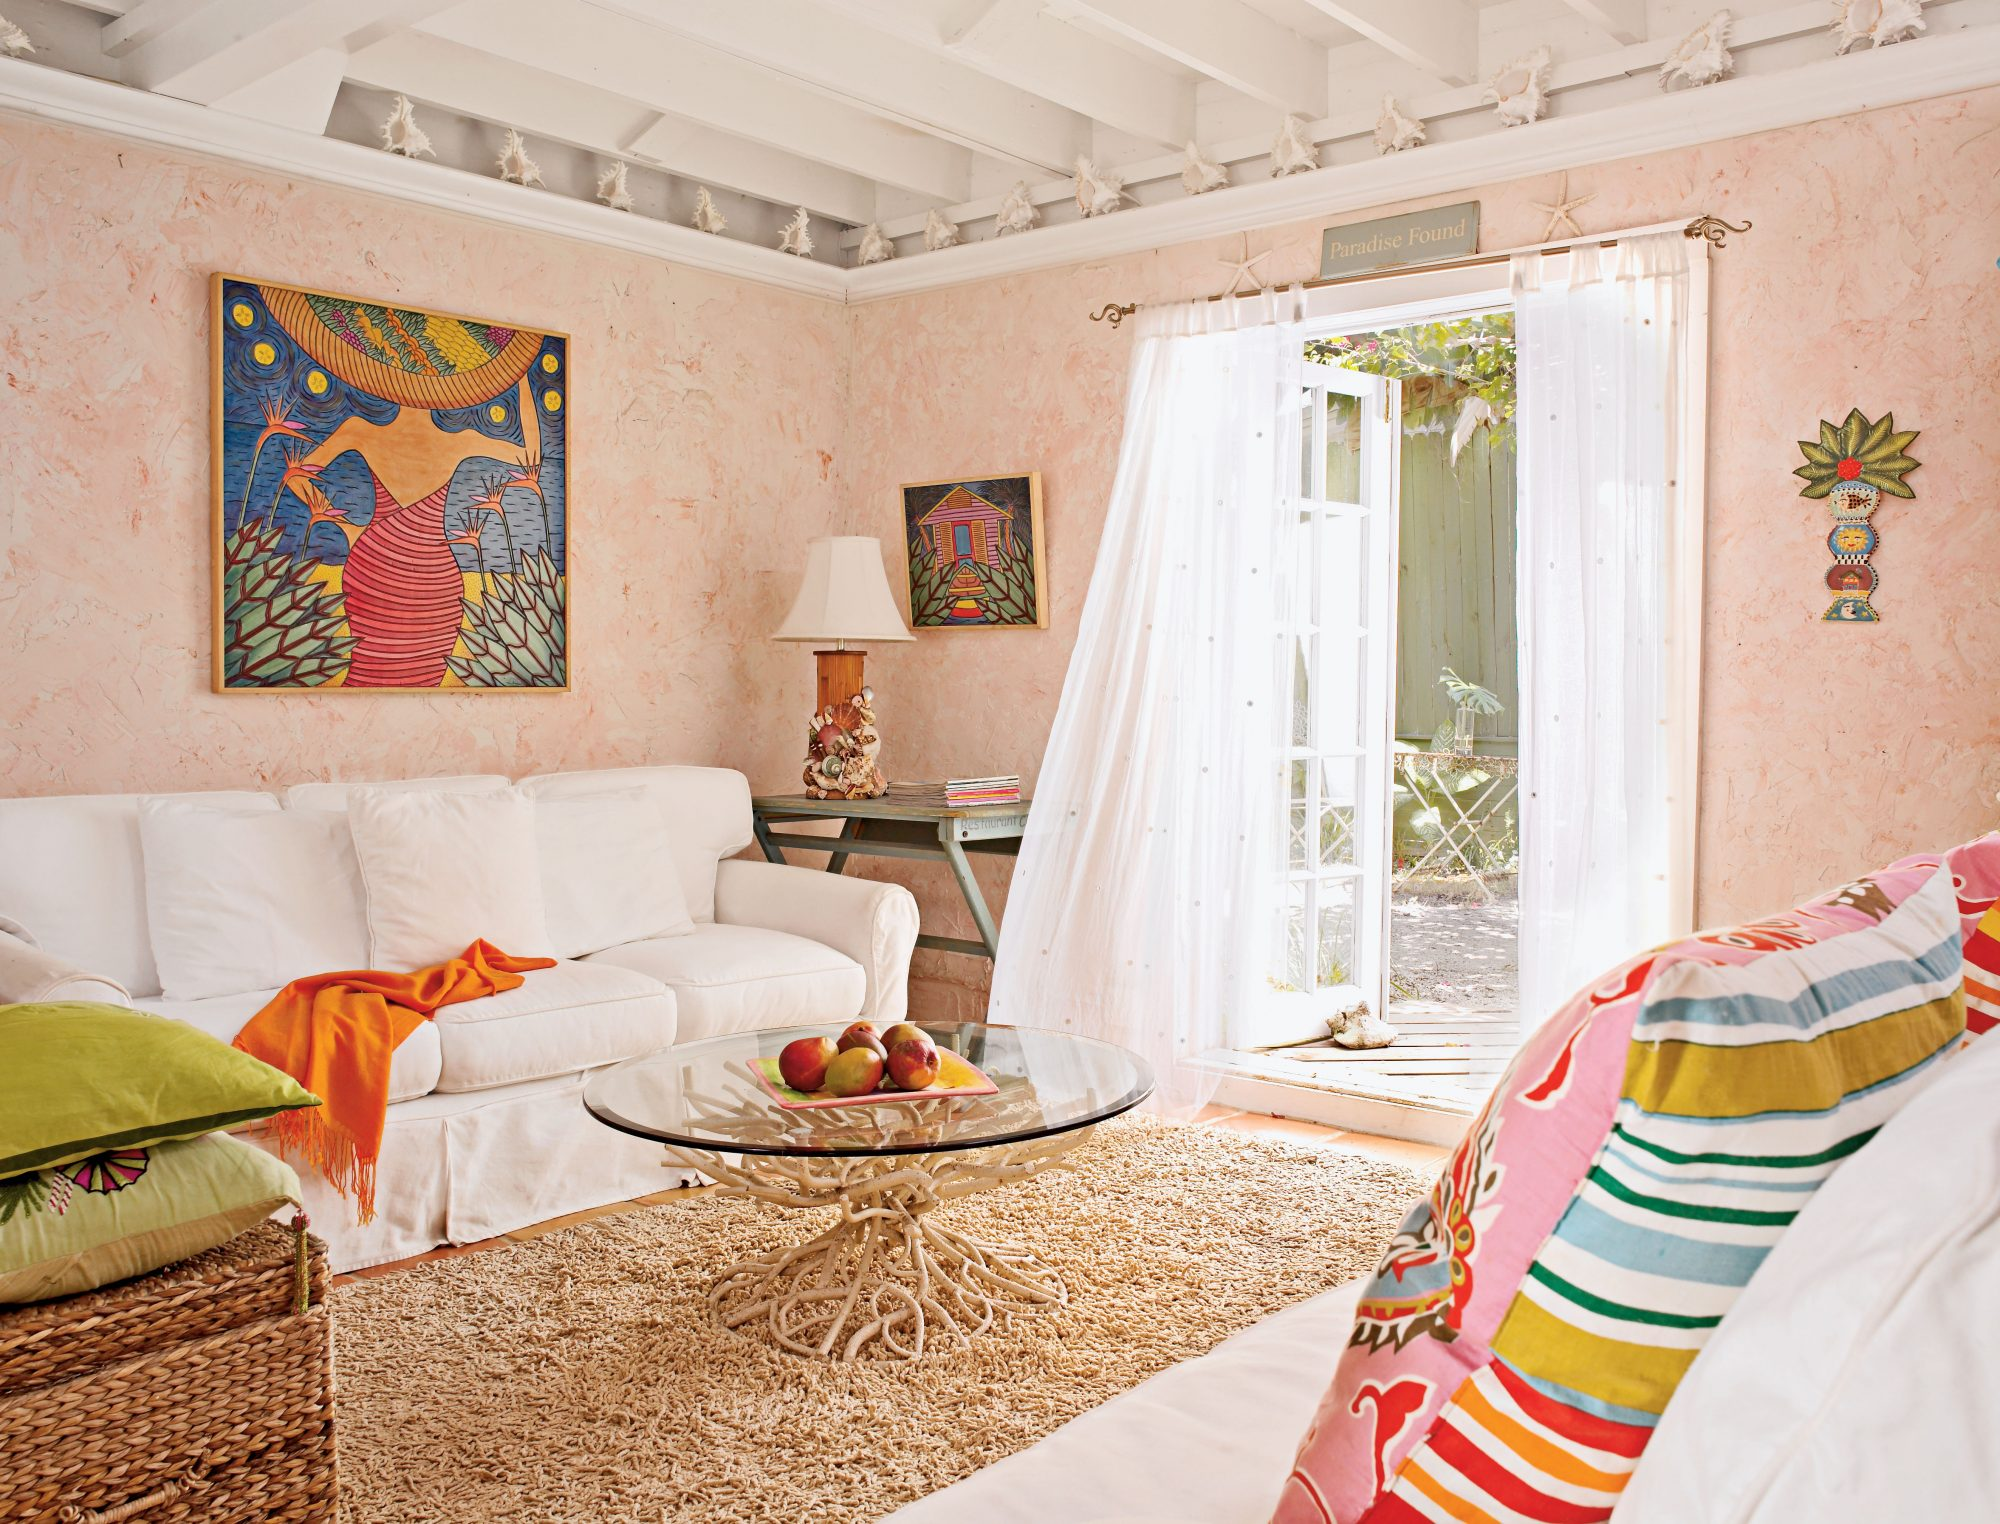 Bold artwork and pillows accent furniture slipcovered in white.